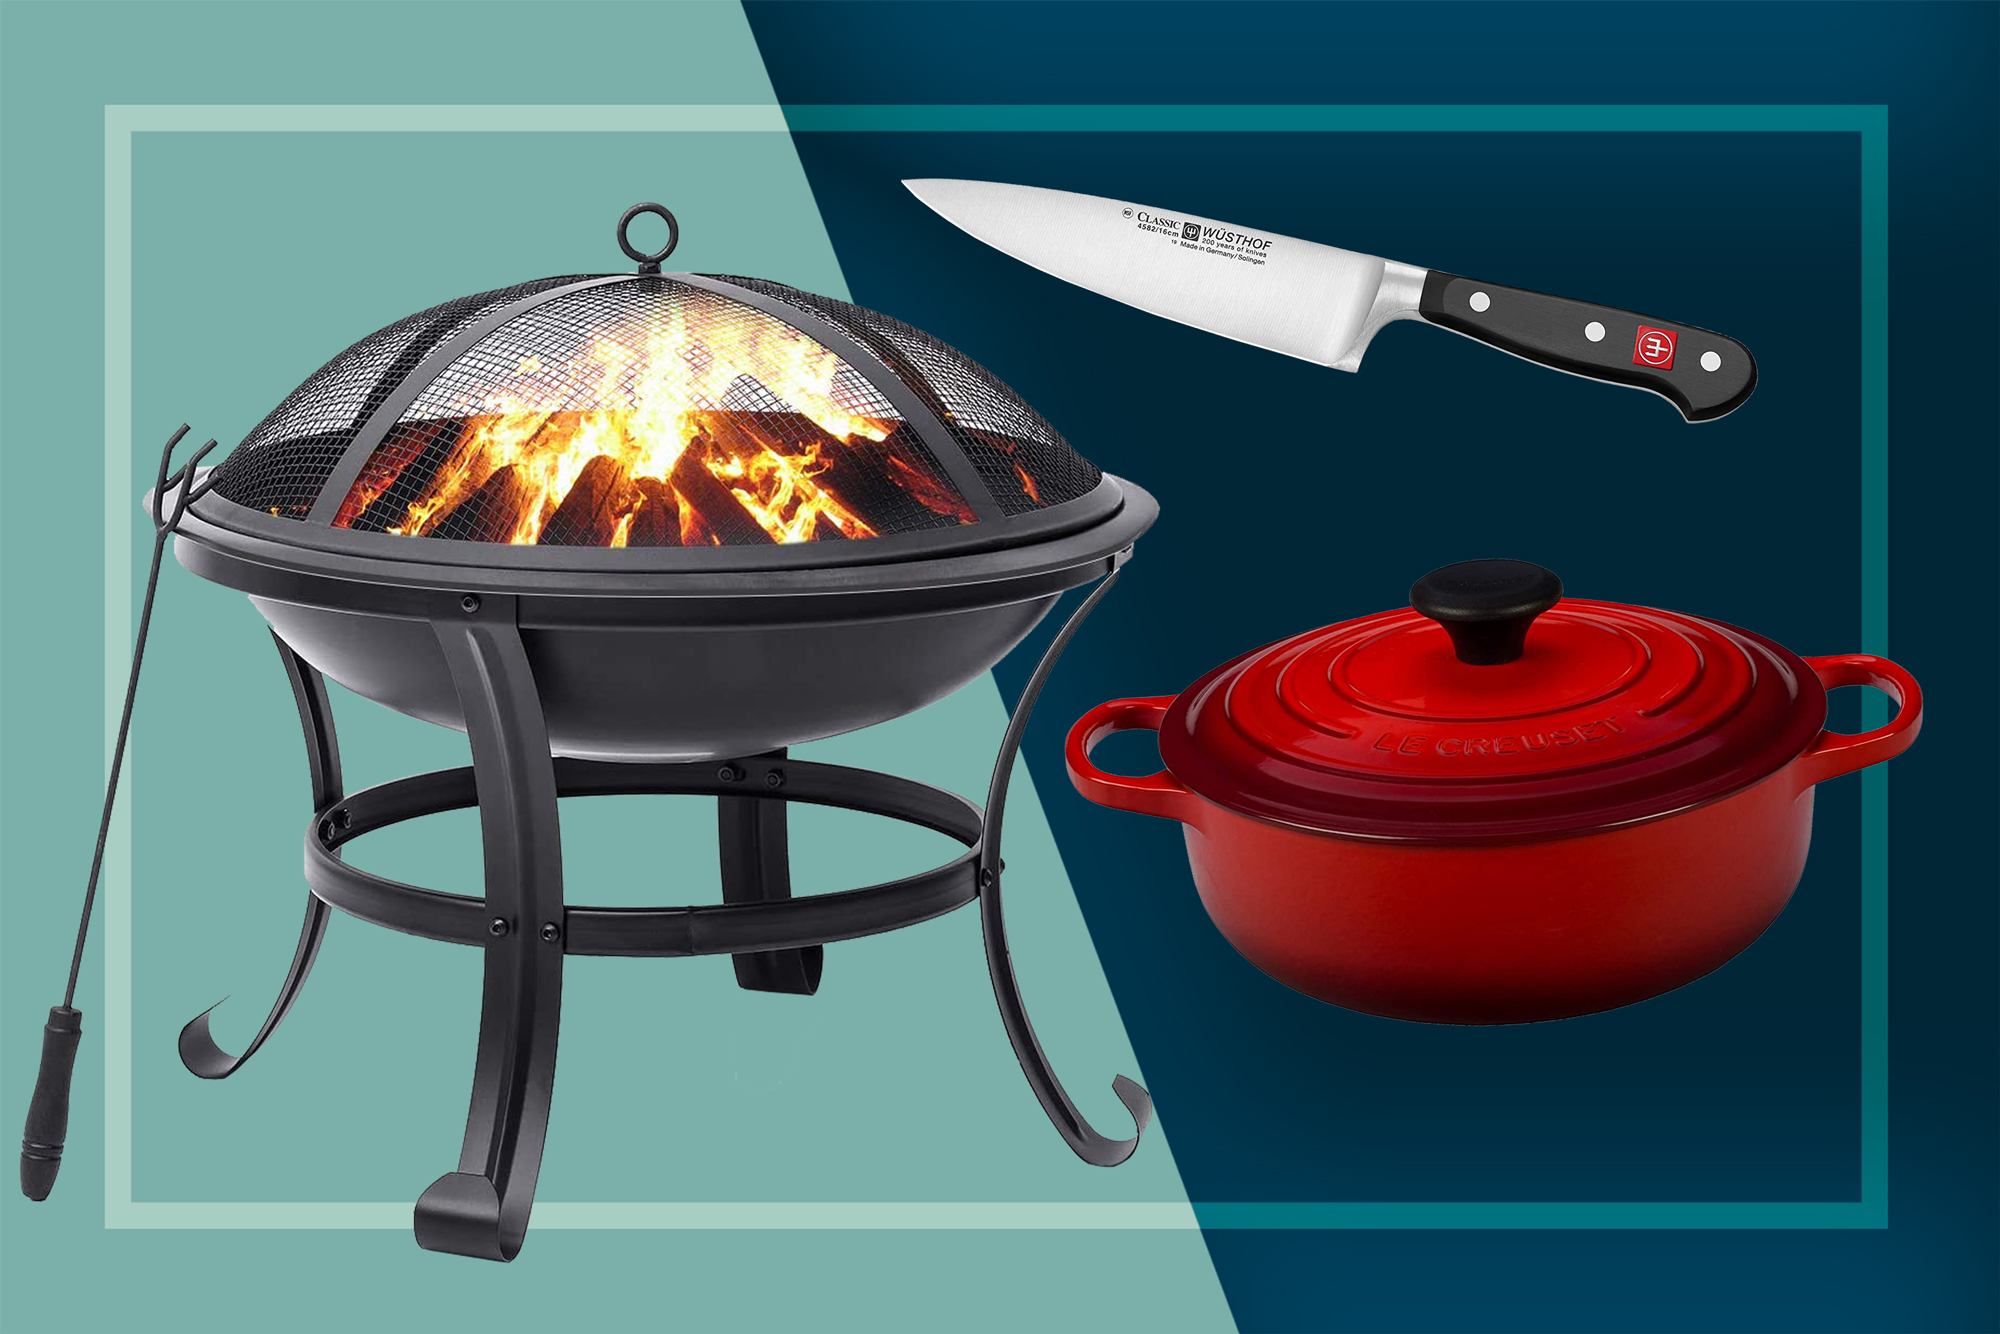 Fire pit, le creuset dutch oven, chef's knife